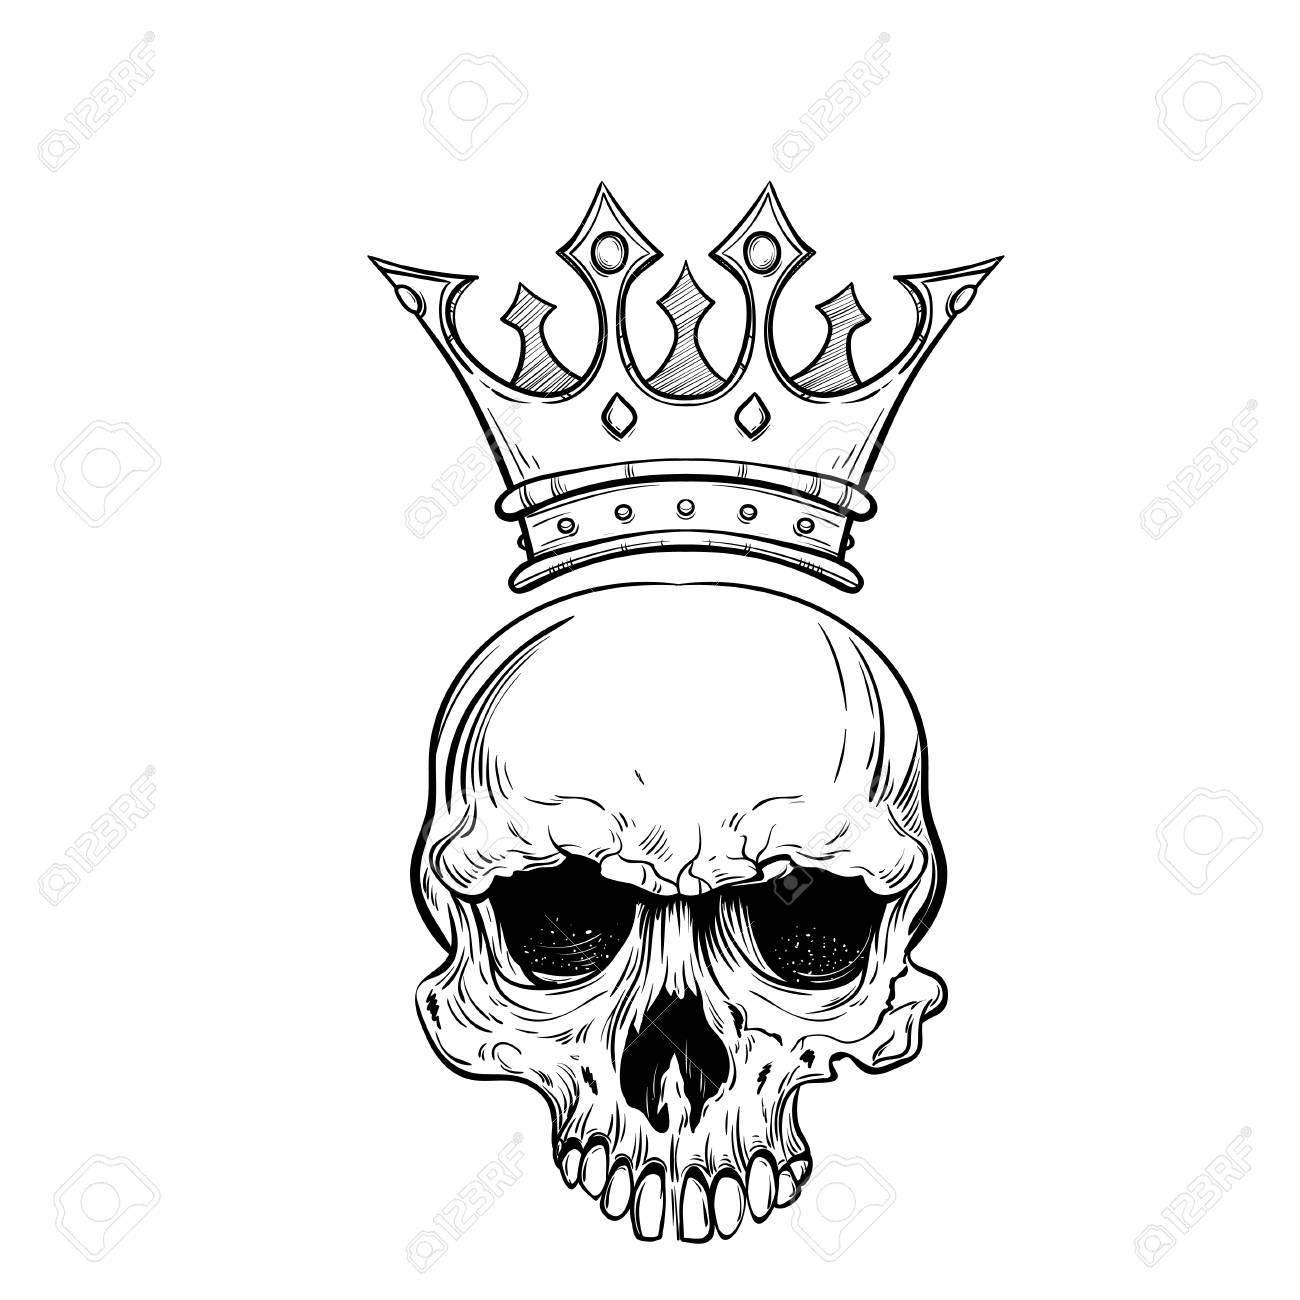 1300x1300 Hand Drawn Sketch Skull With Crown Royalty Free Cliparts, Vectors